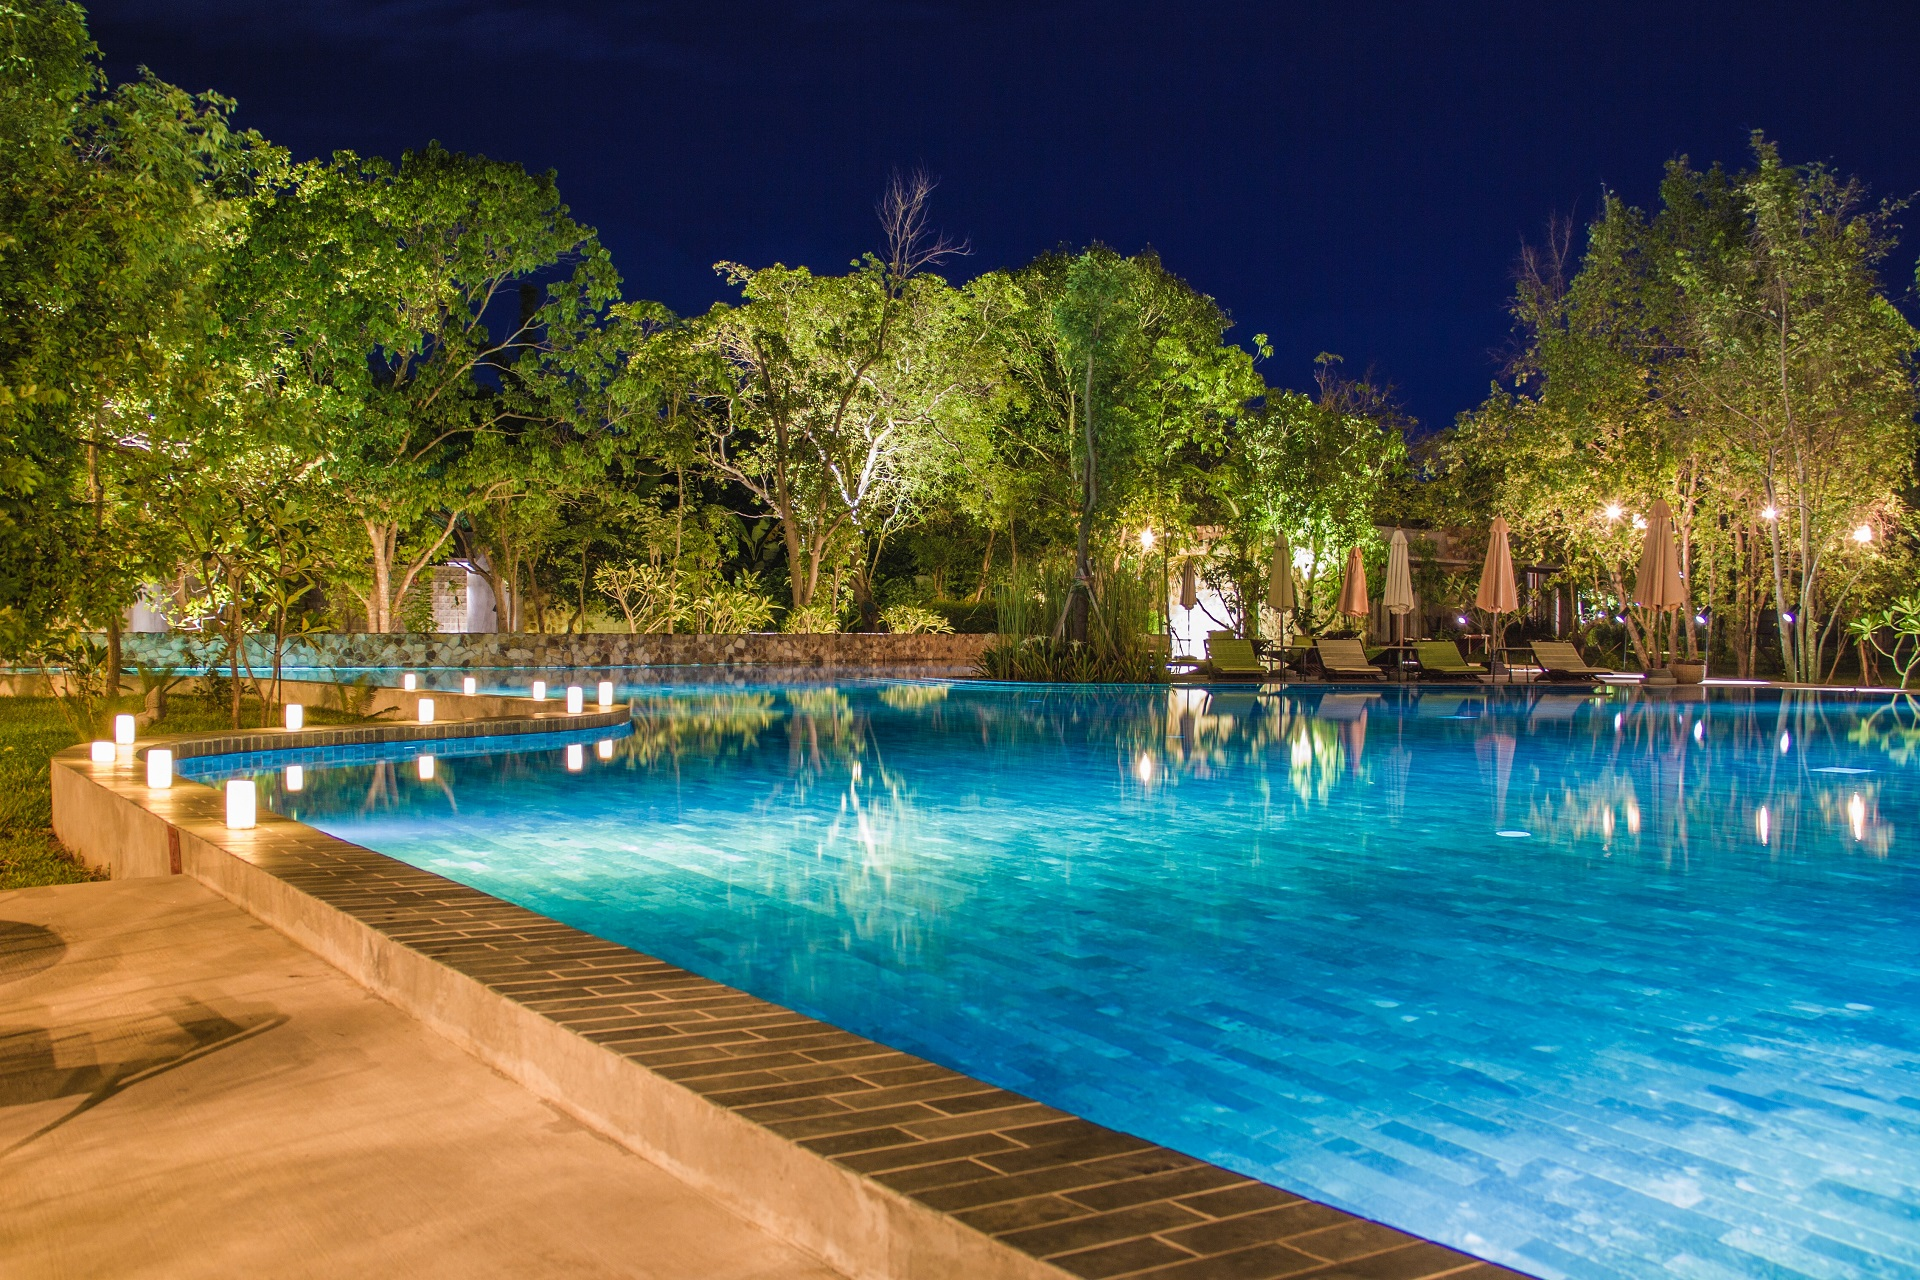 pool during night